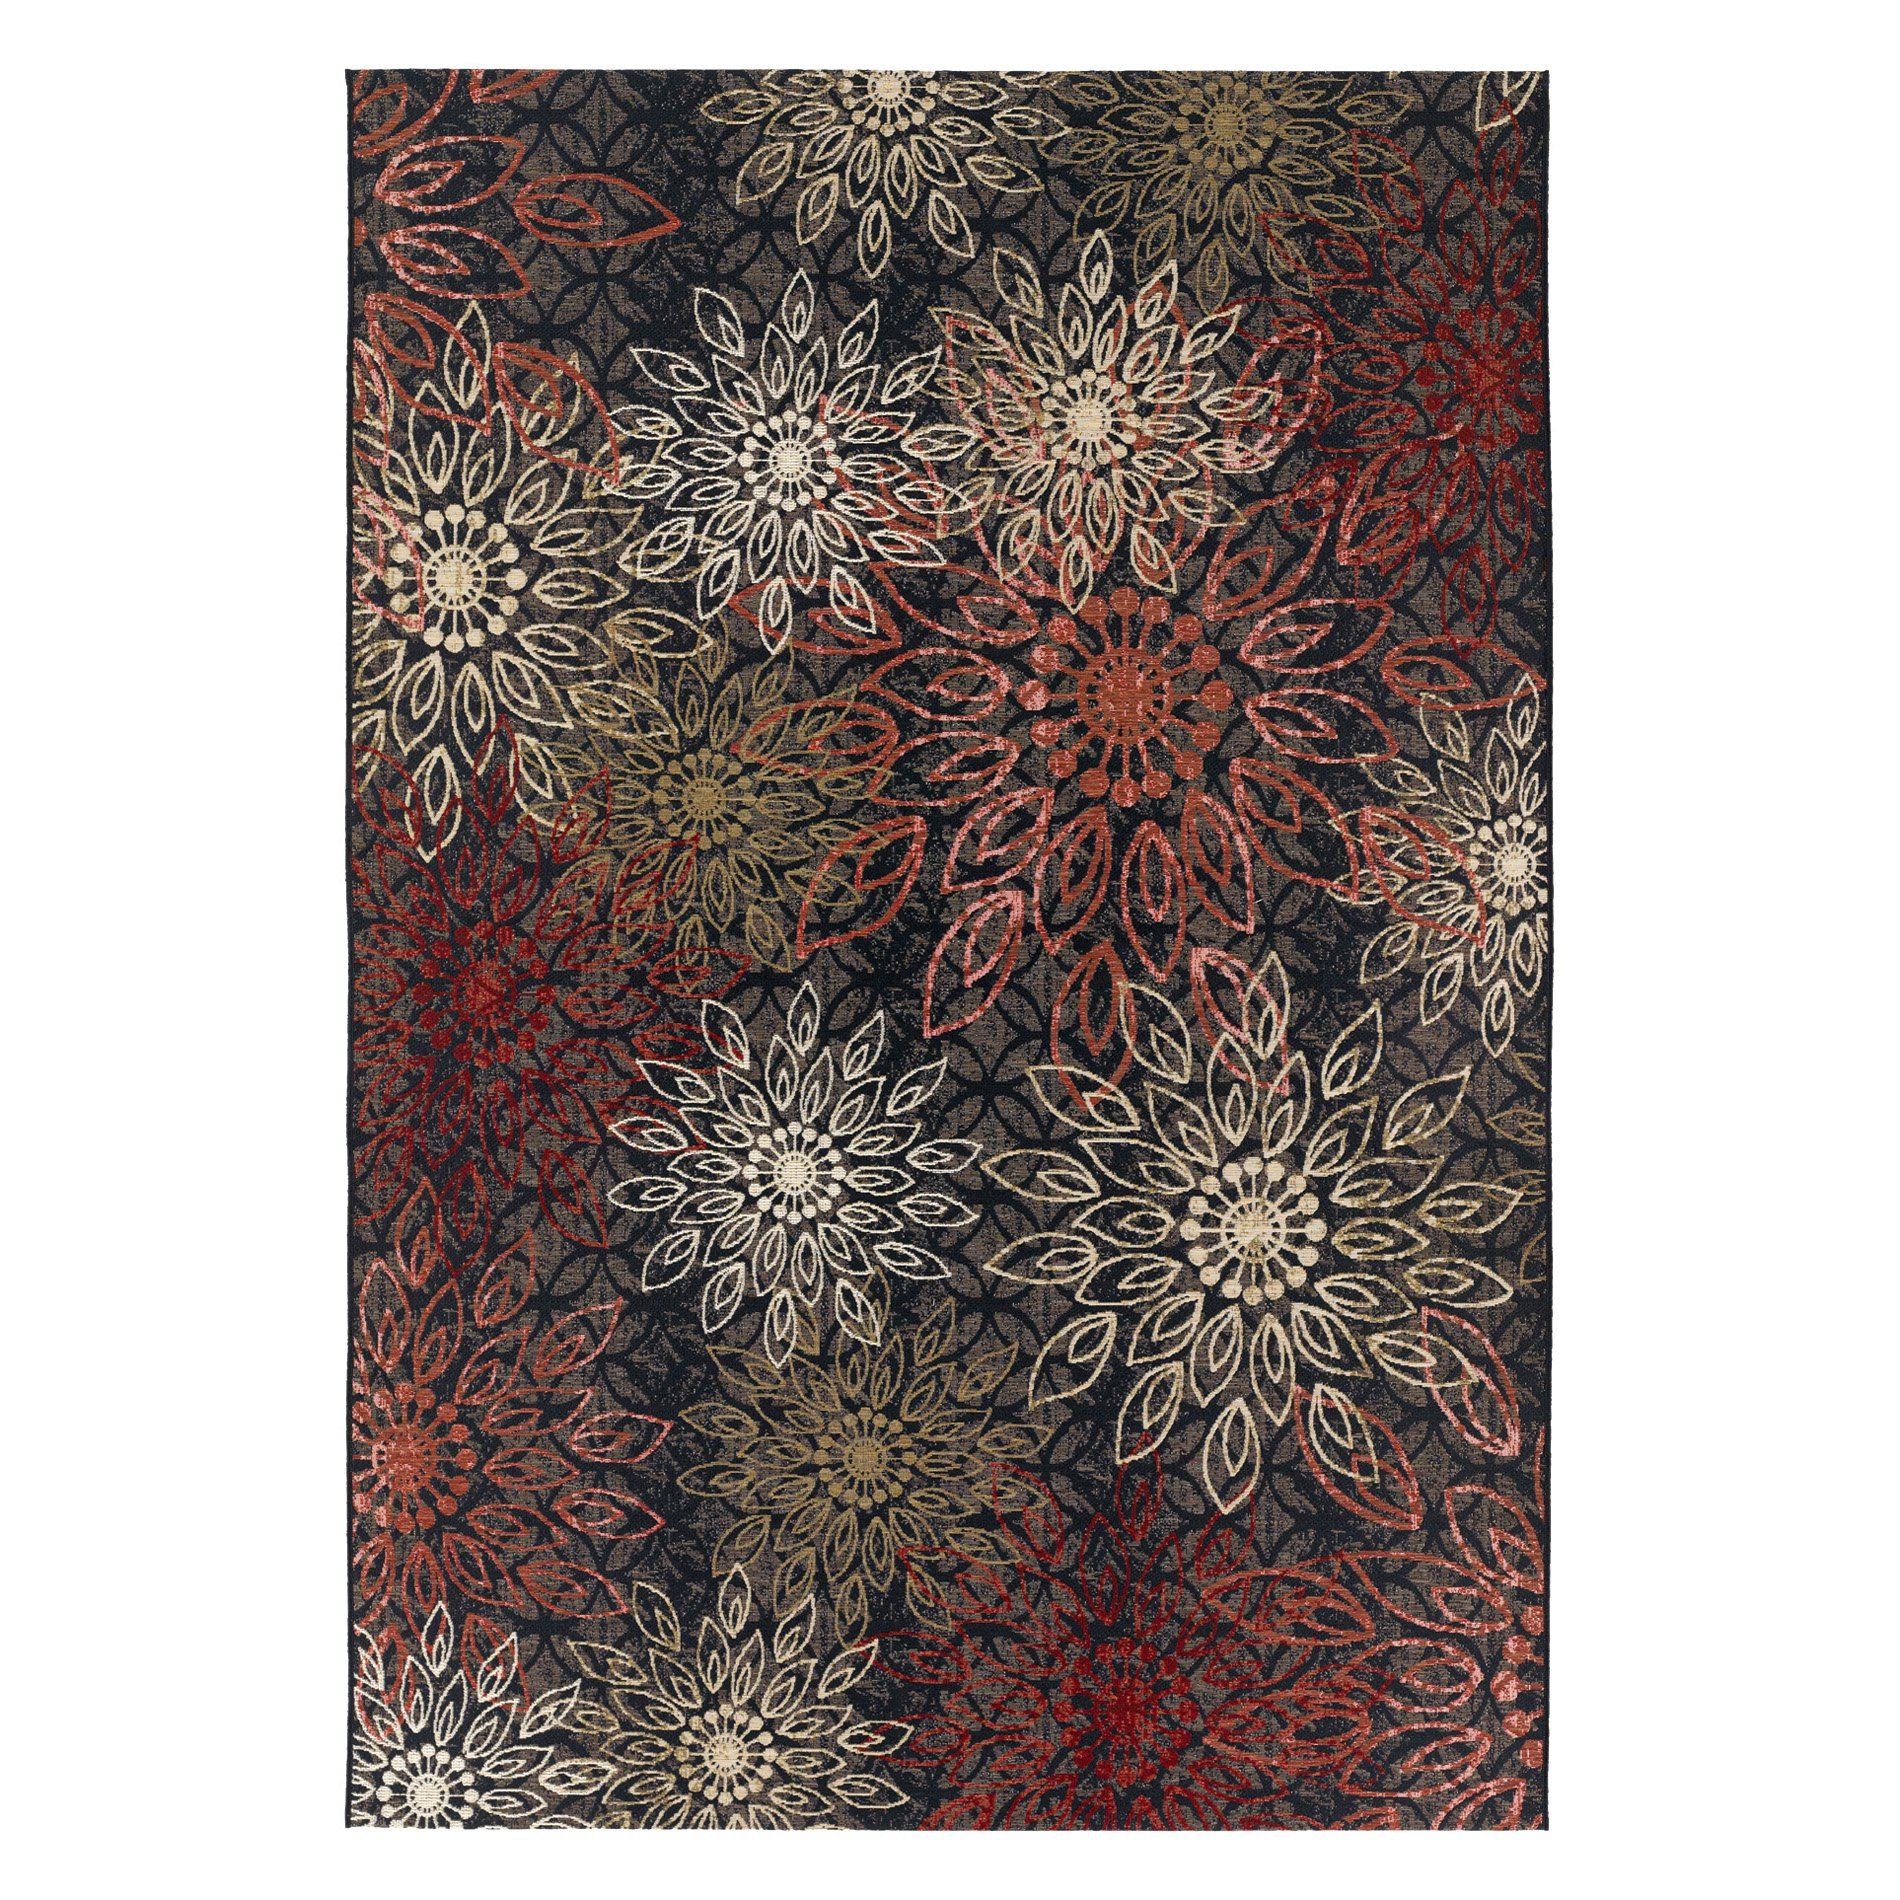 Couristan Dolce Amalfi Flat Woven Indoor/Outdoor Rug, Multi-Color, Multiple Sizes